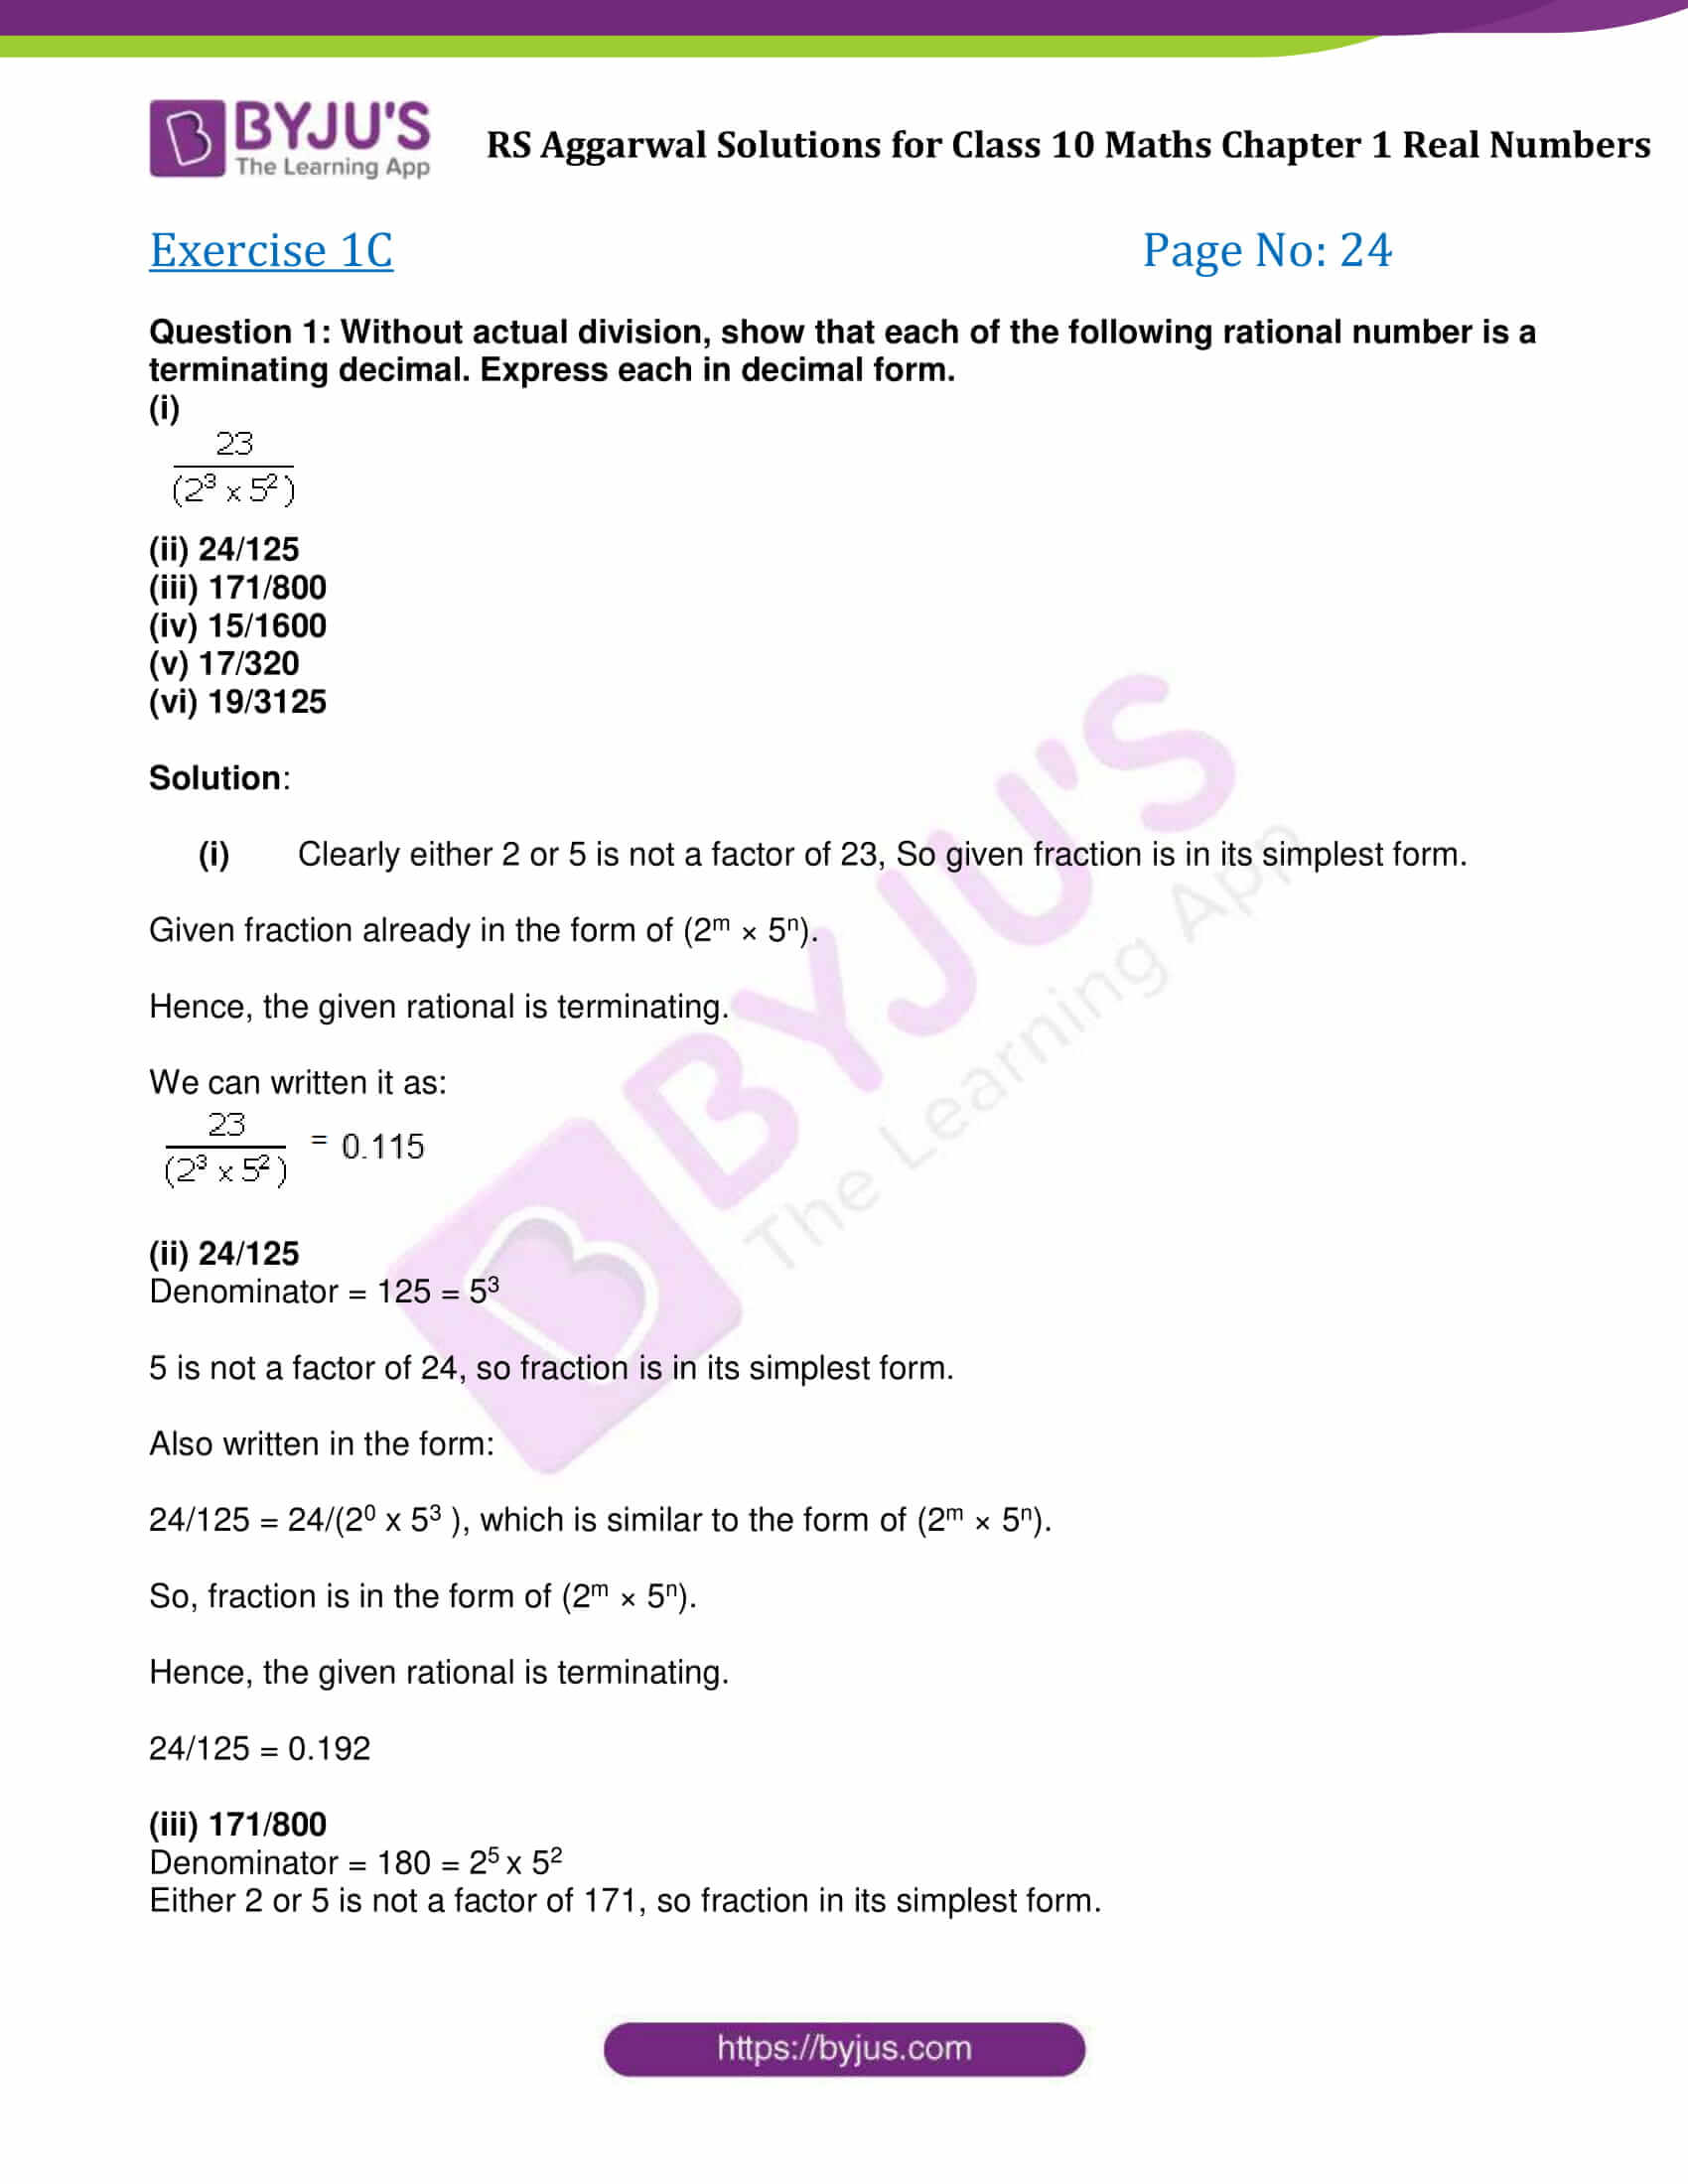 Rs Aggarwal Solution Class 10 Maths Chapter 1 Ex 1C